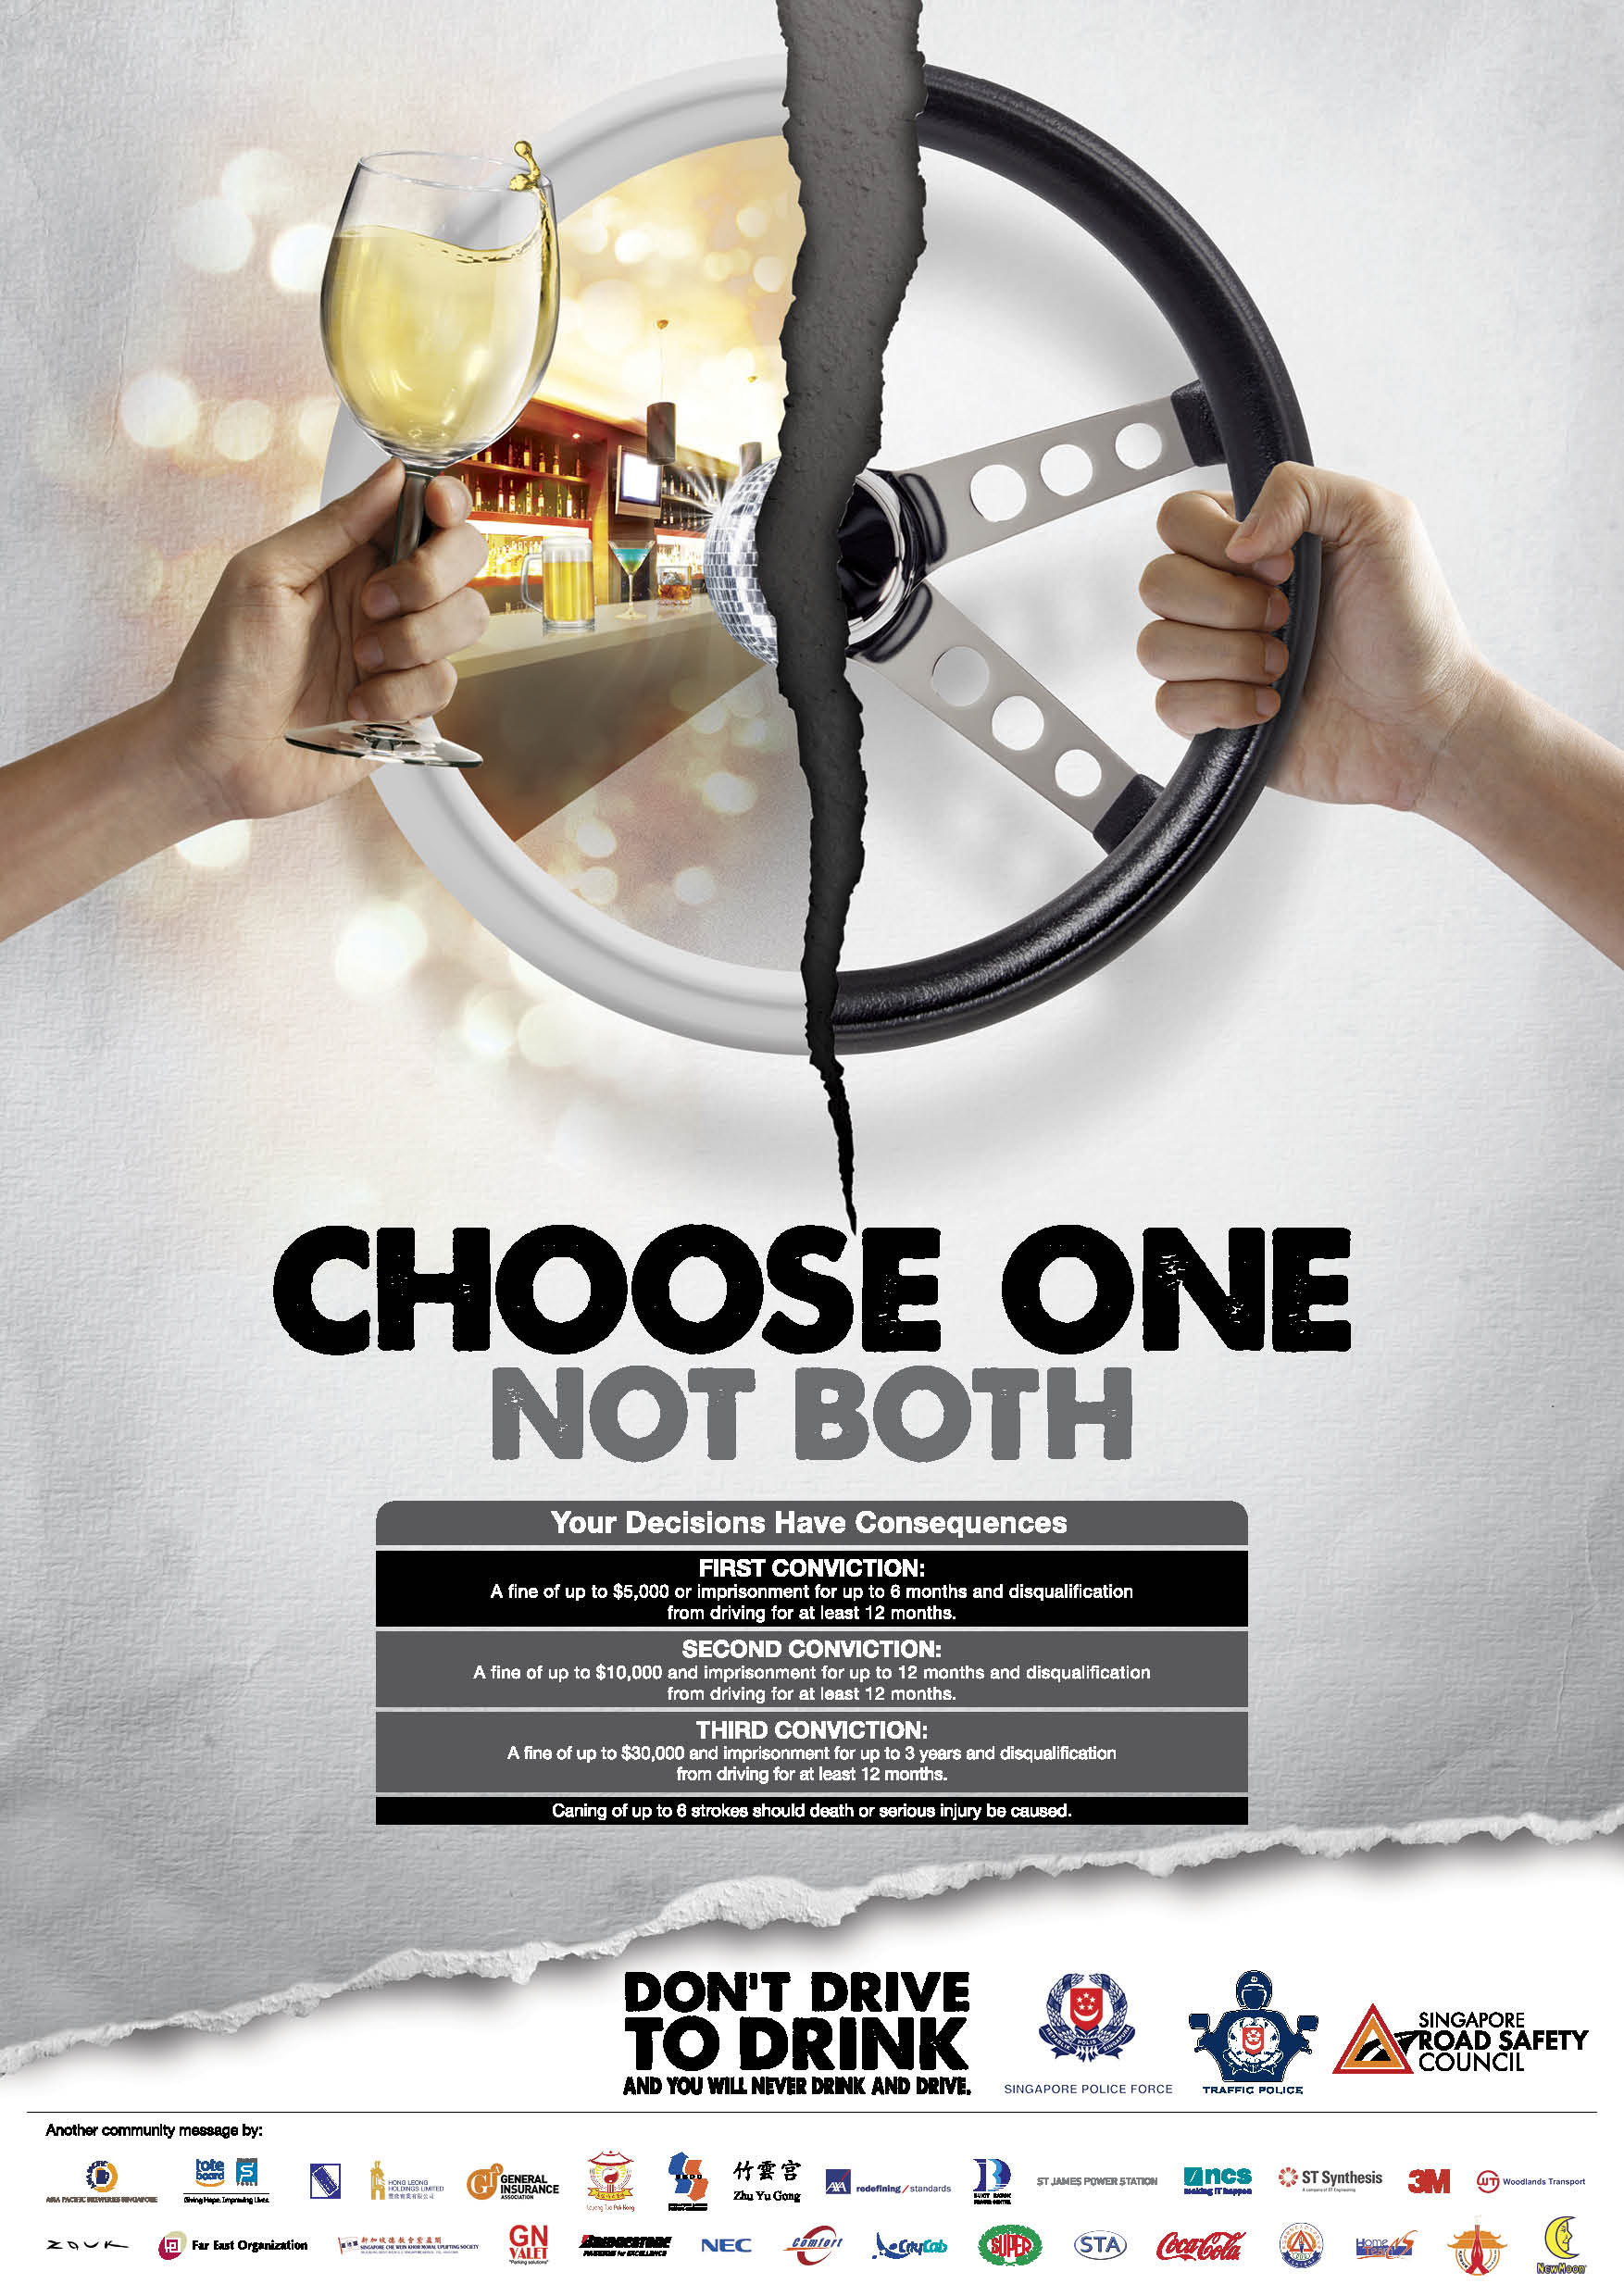 2020 Other | Images: No Drinking And Driving Posters